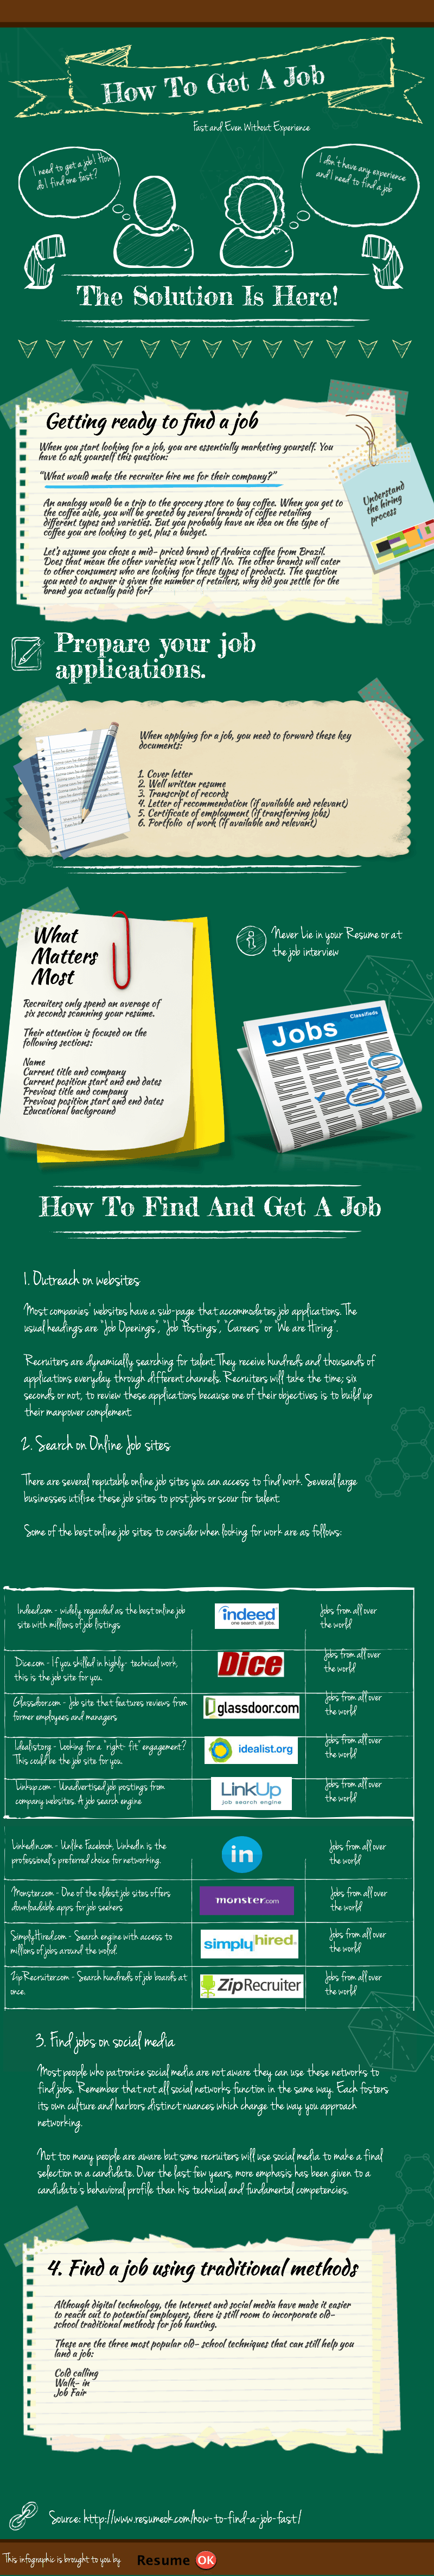 How To Get A Job Infographic Jobs tips cold calling for jobs